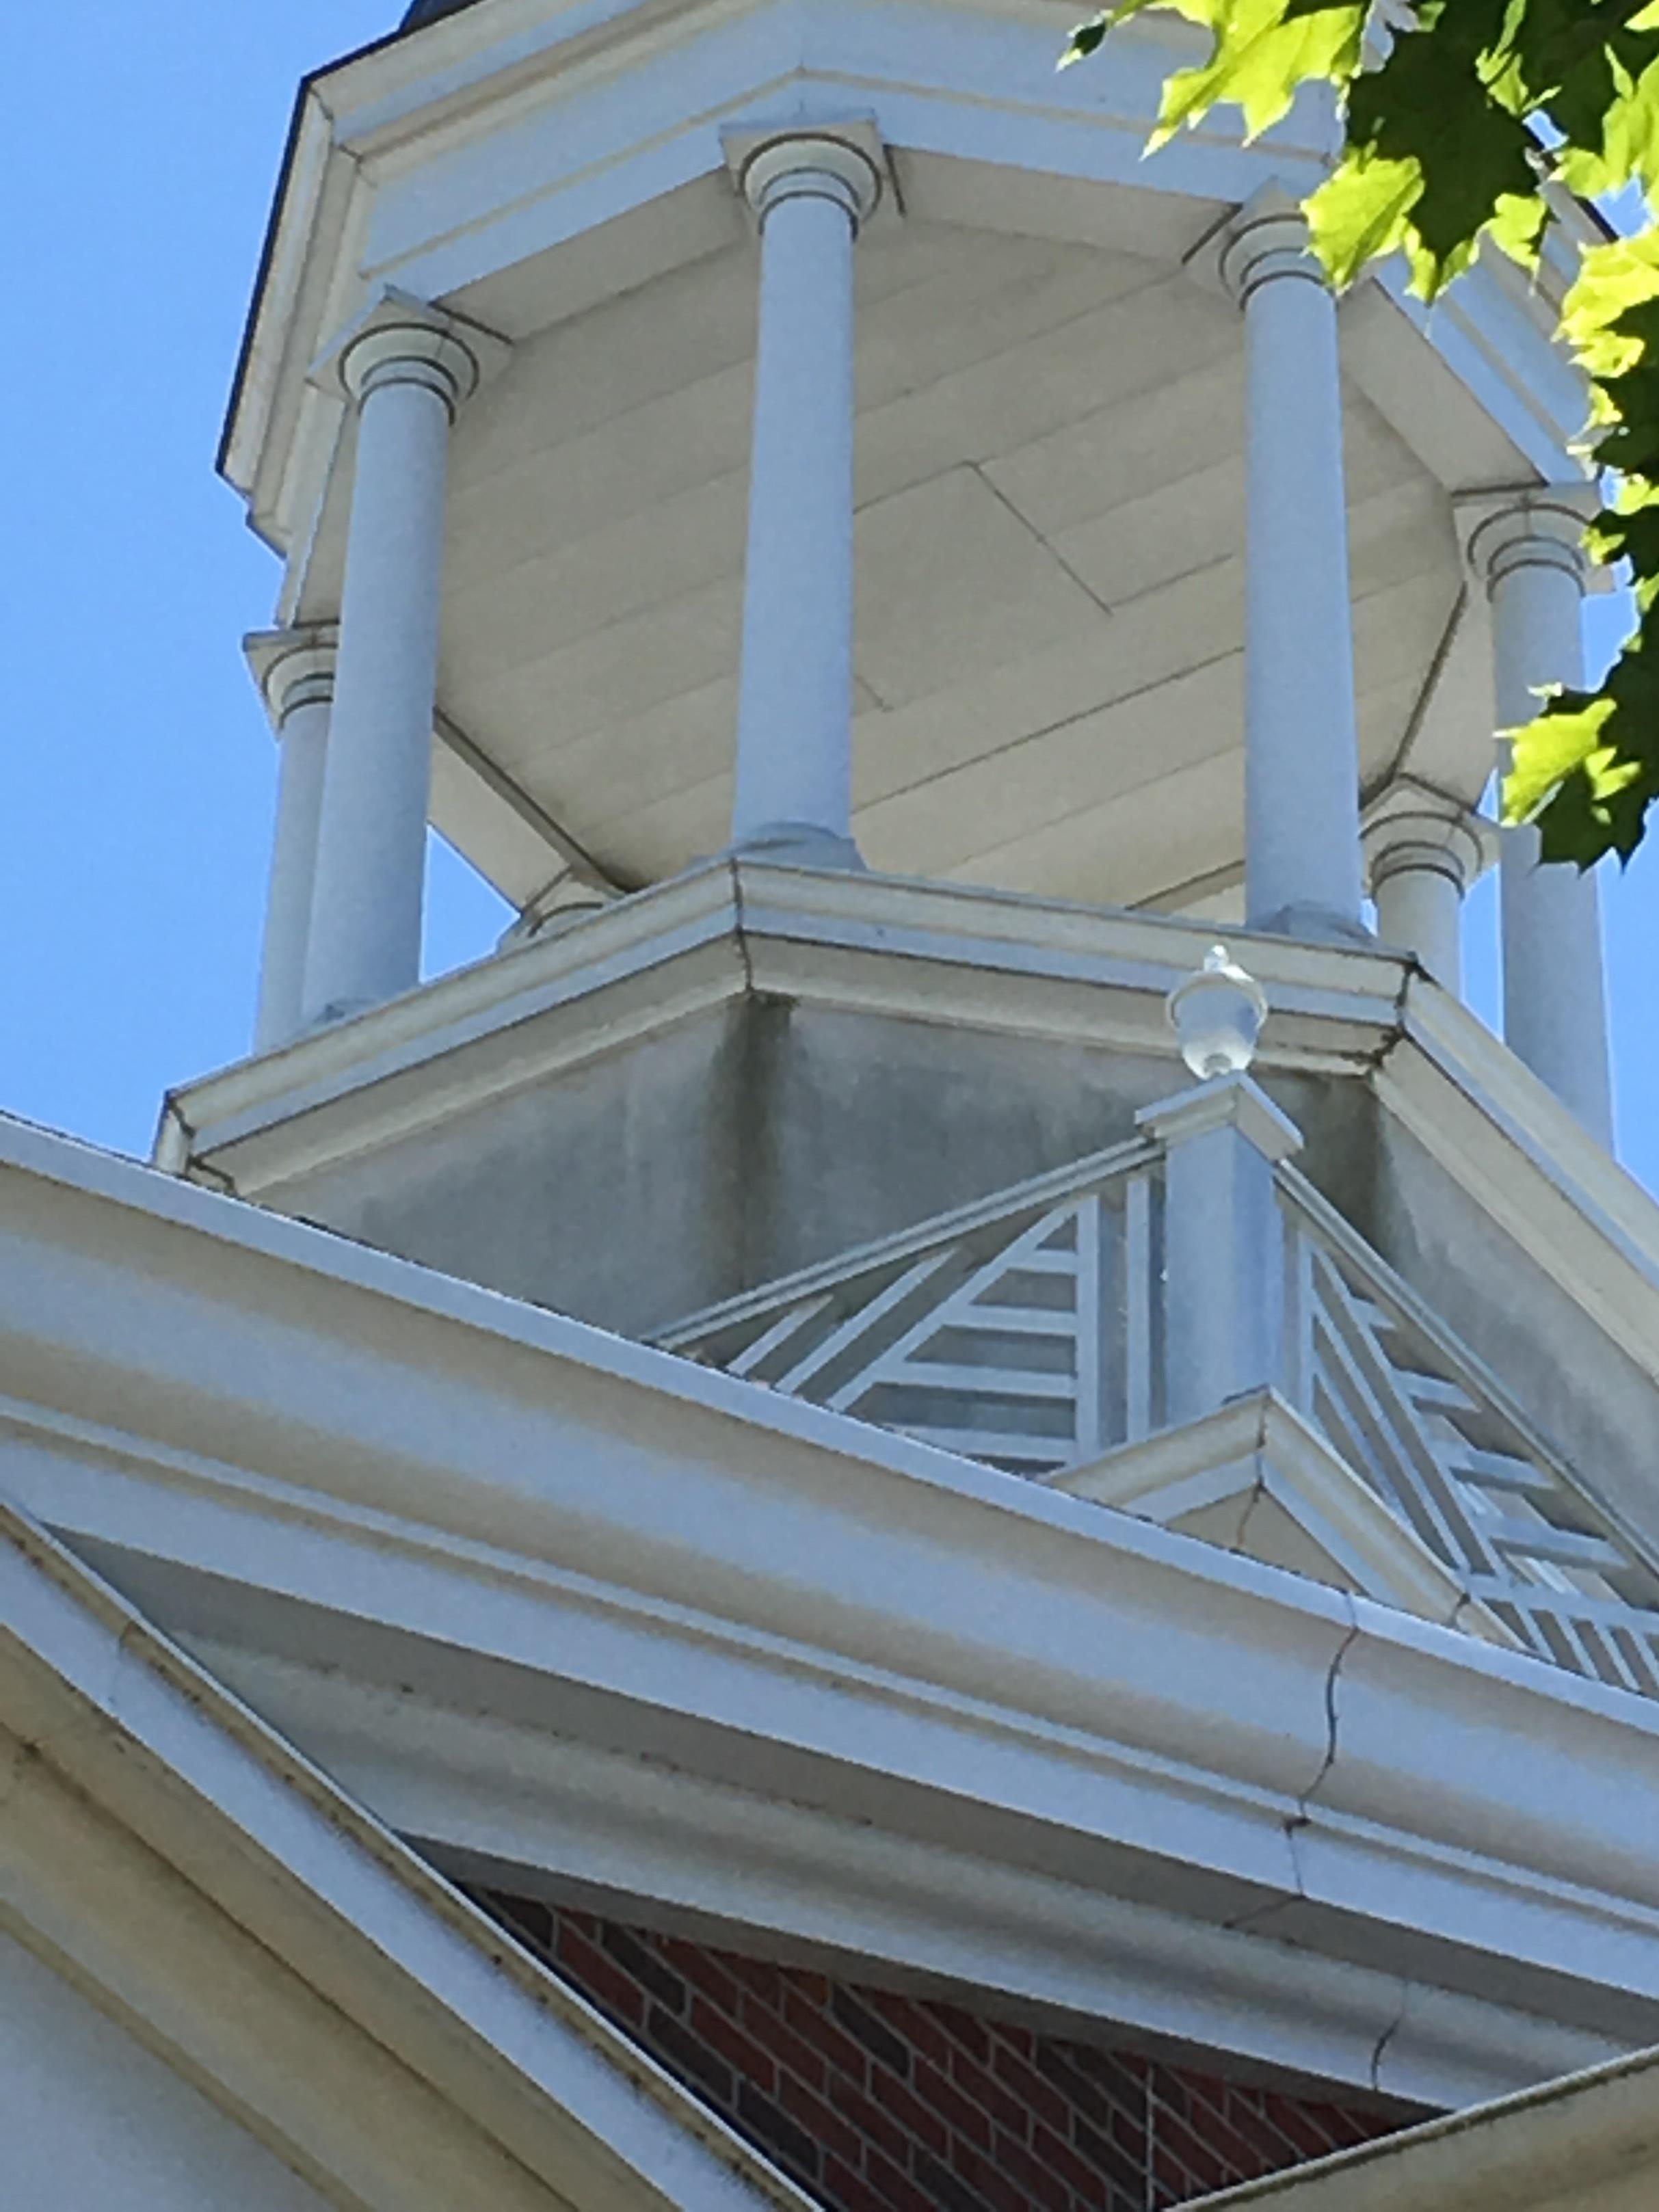 Cupola in need of restoration